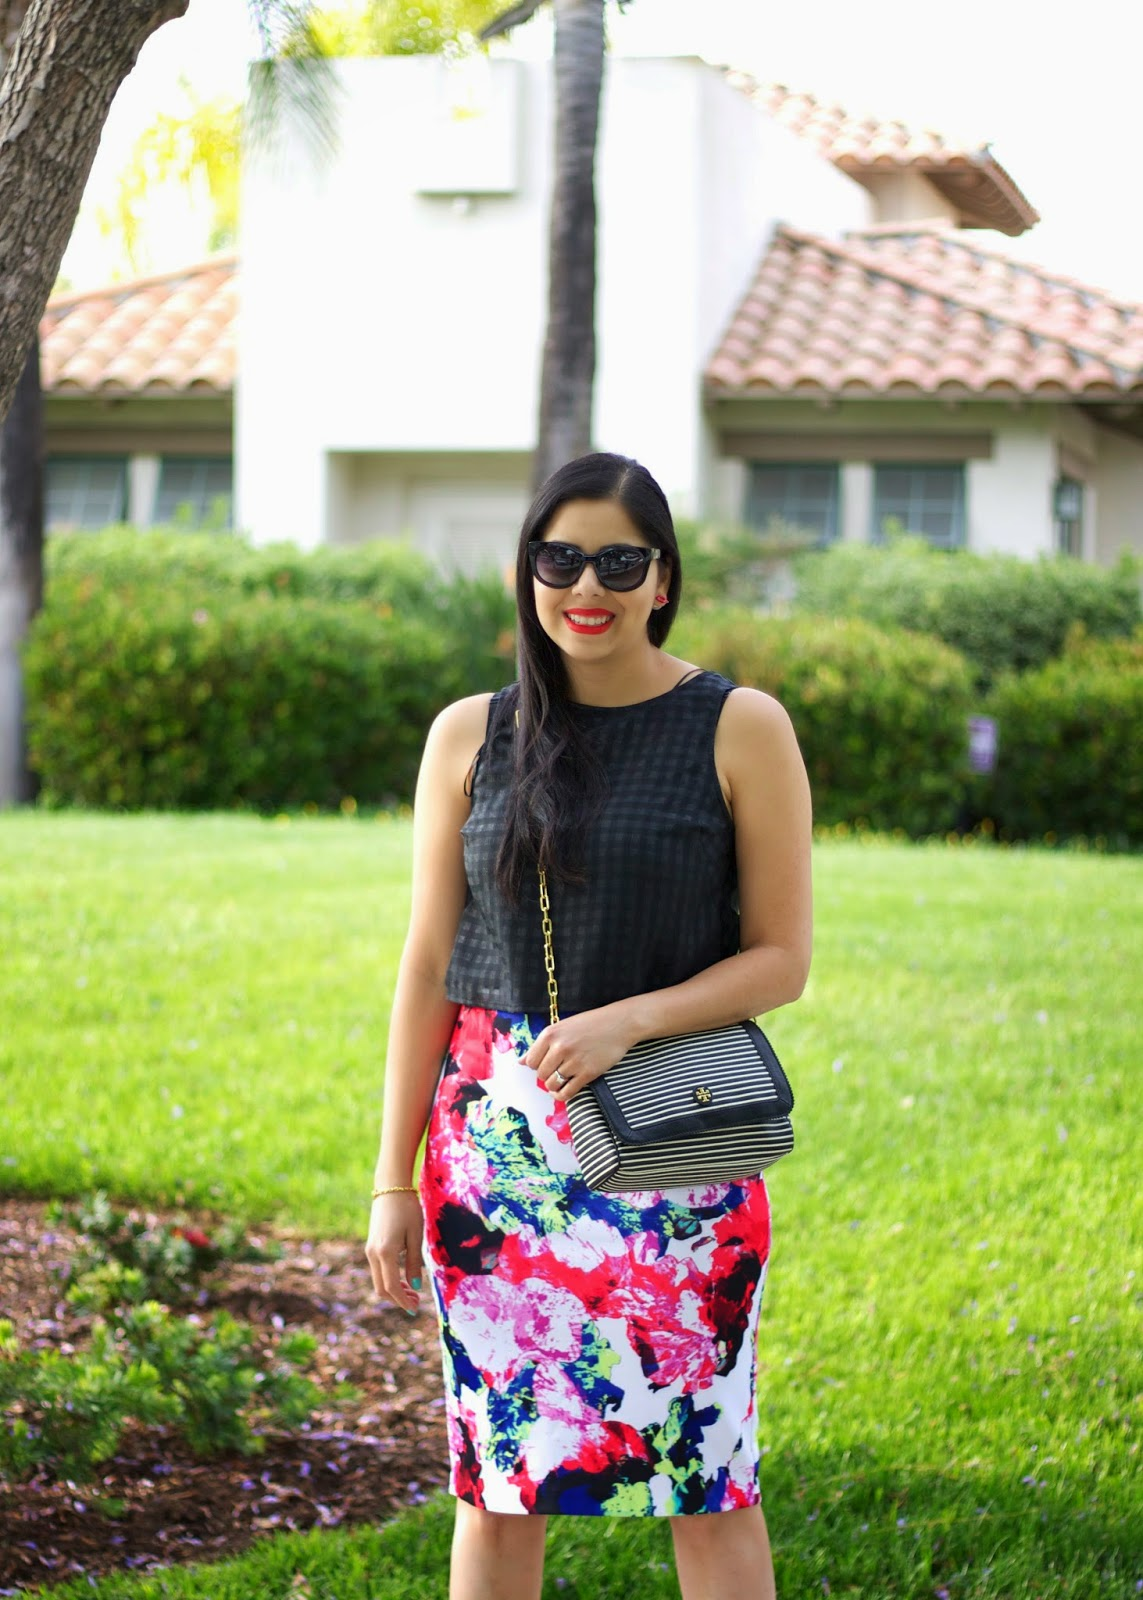 Bold Print skirt, Milly for Kohls skirt, Milly skirt, Kohls pencil skirt, Crop top for the regular woman